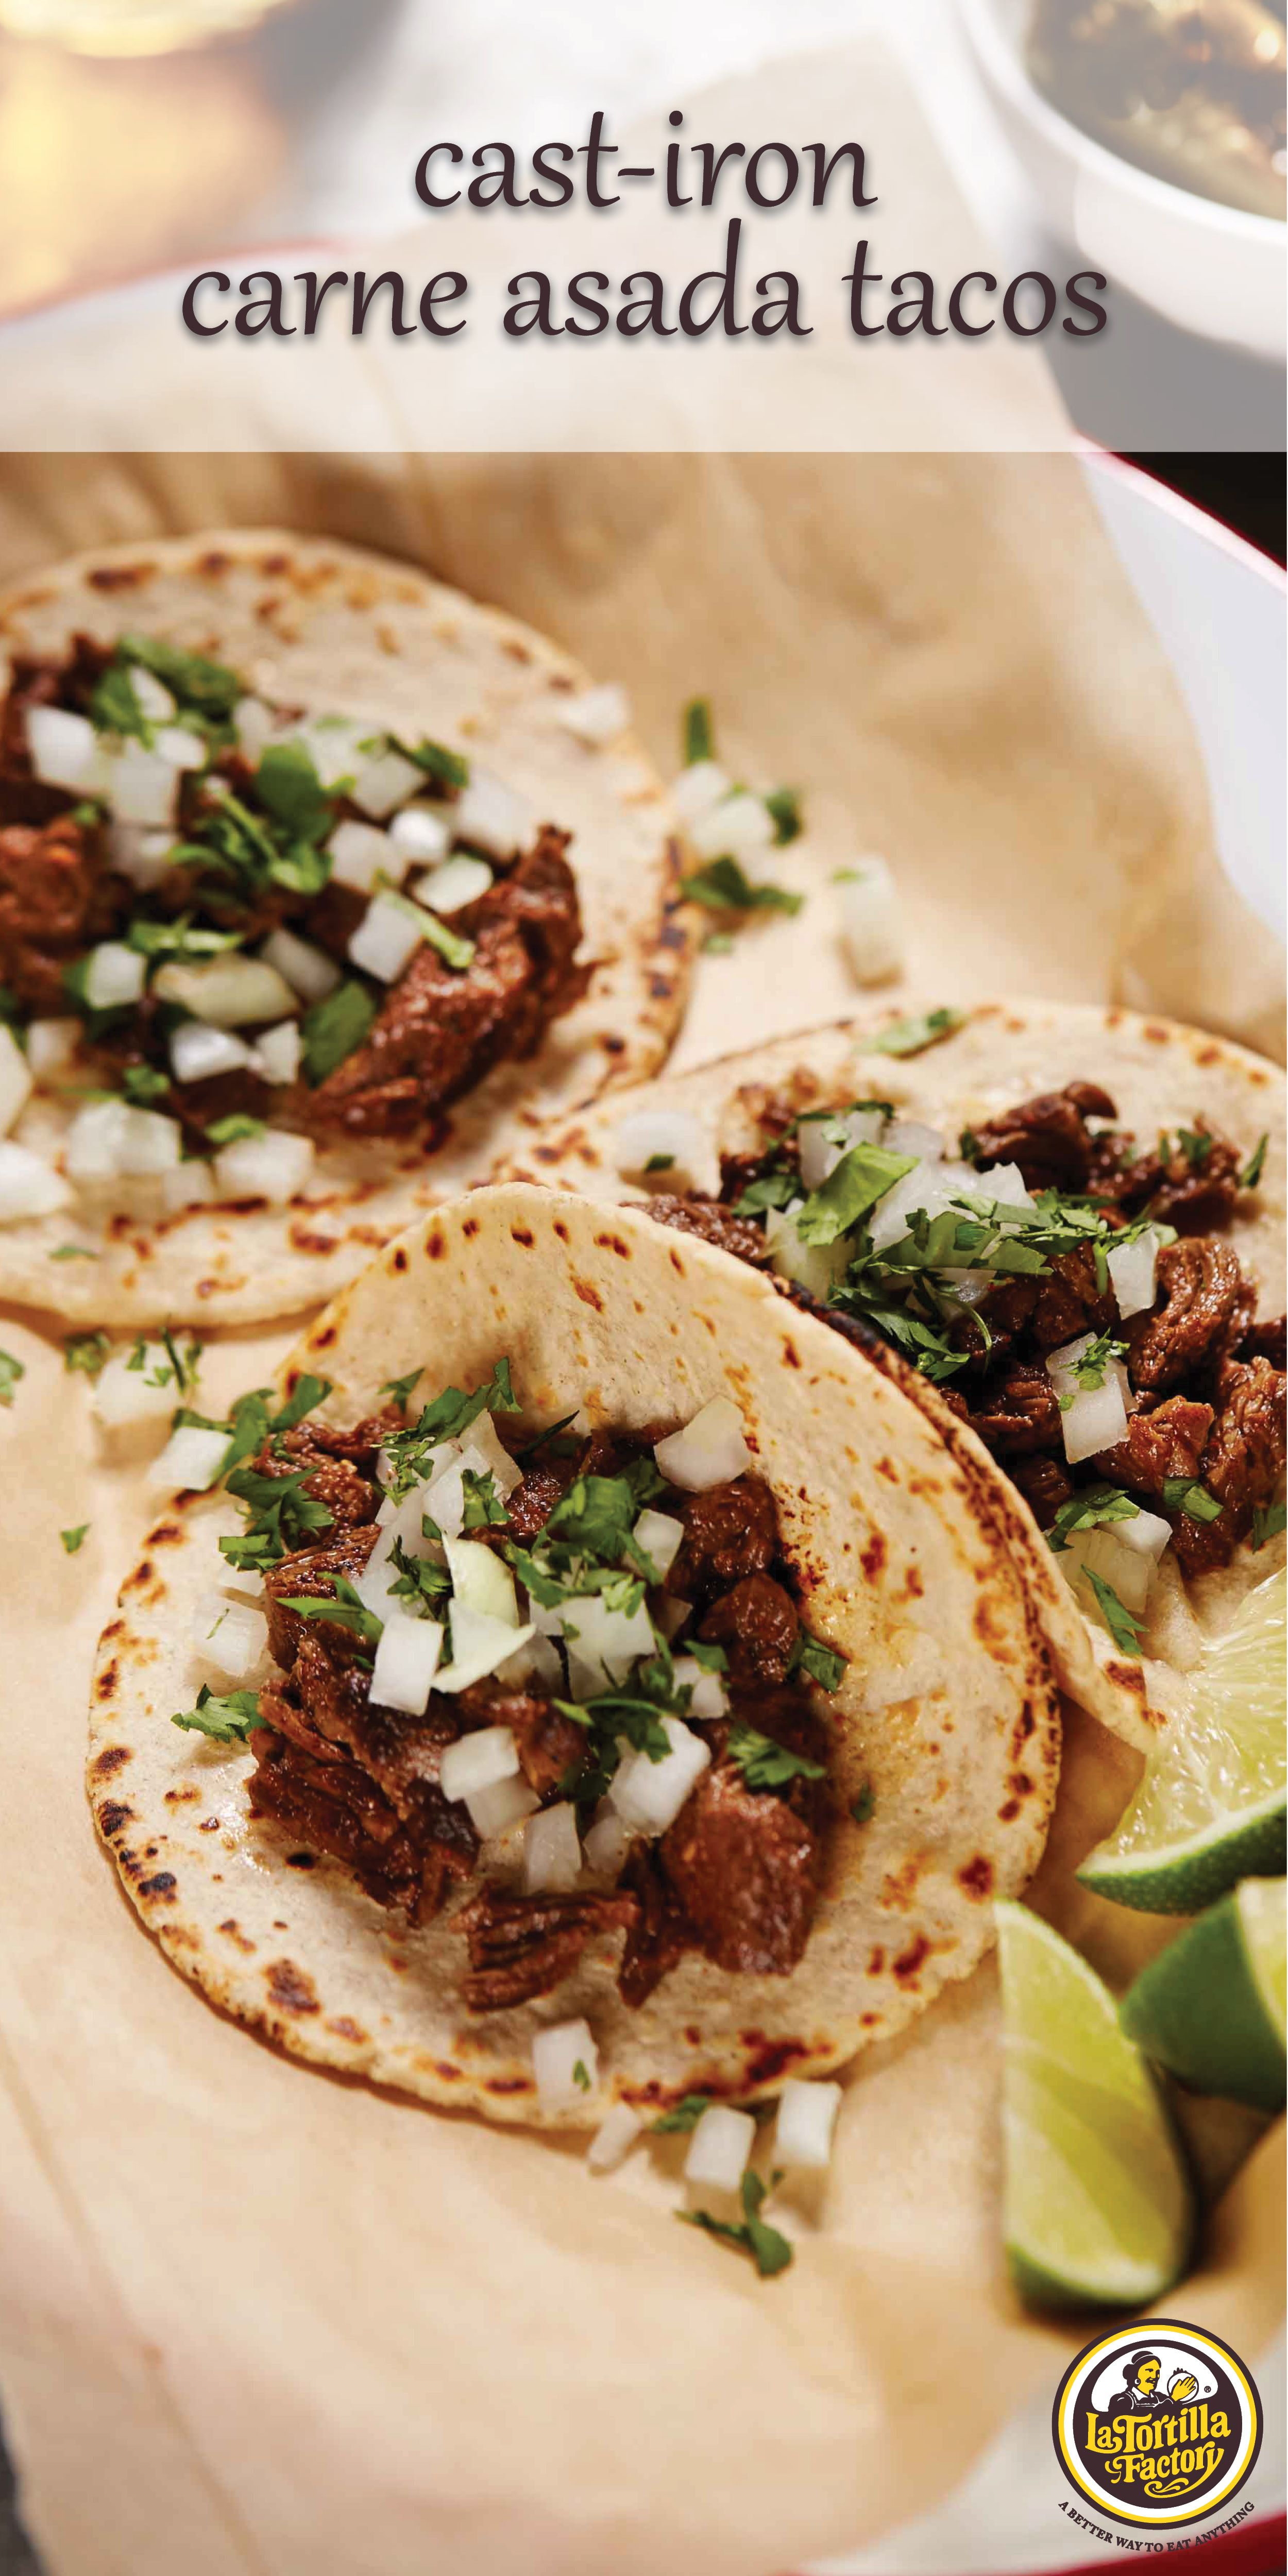 Recreate street tacos right at home with our Hand Made Style Street Taco Size tortillas. This recipe uses a simple, spicy rub instead of a more traditional (and labor-intensive) marinade. The salt and brown sugar help tenderize the skirt steak, which is a tasty, fast-cooking cut. You can substitute flank steak. Mexican markets also often sell marinated carne asada, which you can use here and skip the dry rub. #asadatacos